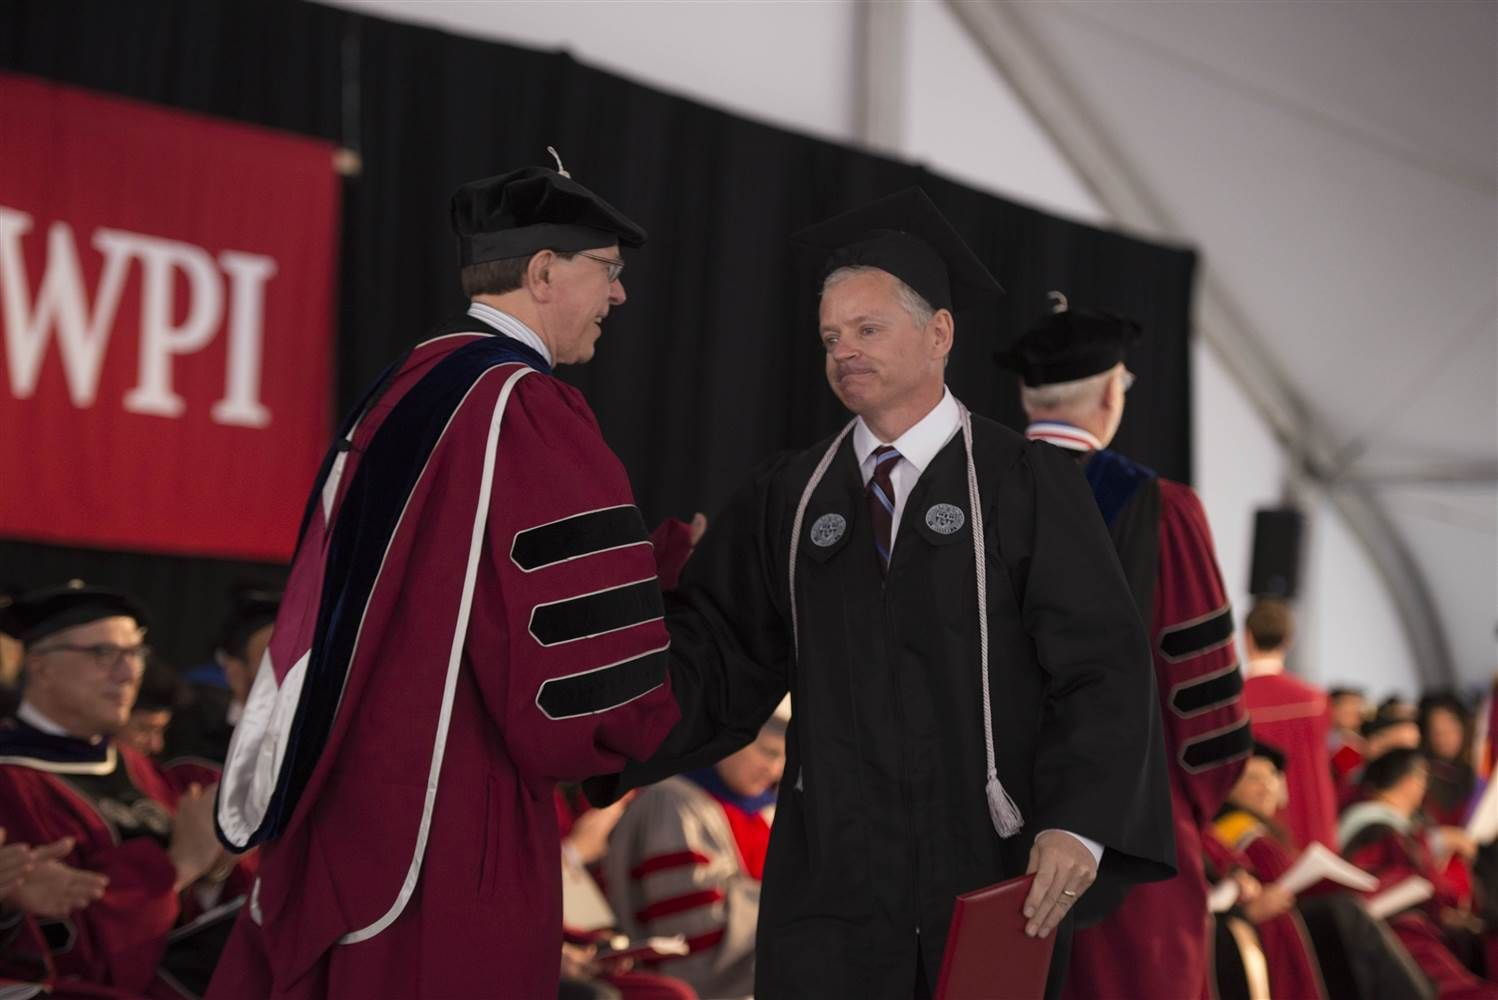 Custodian, 54, Graduates After 8 Years of Cleaning College